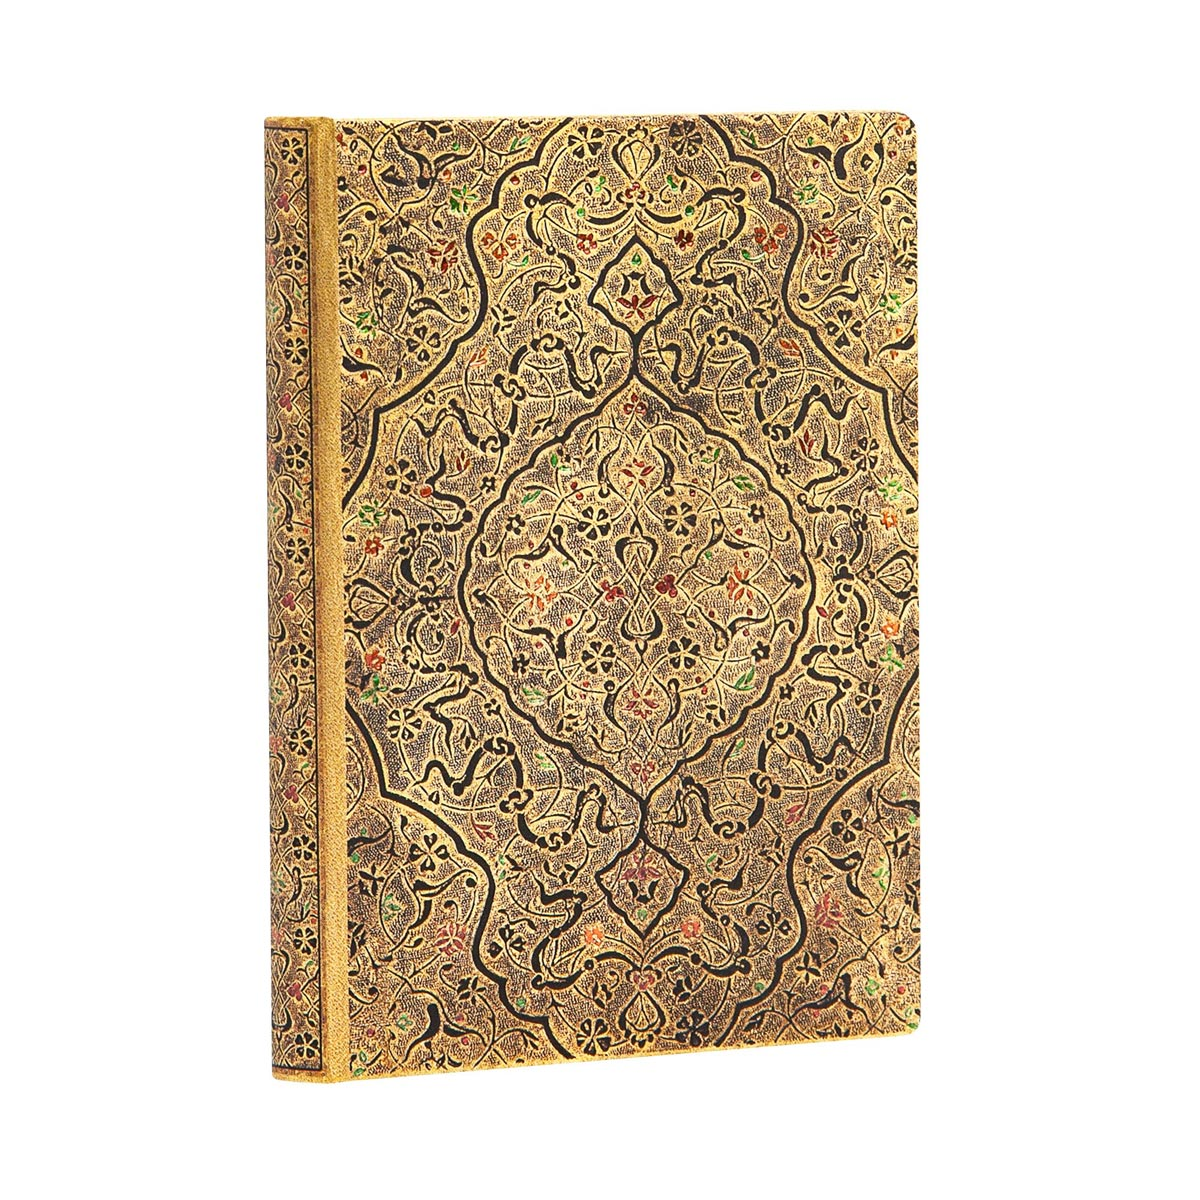 Paperblanks Zahra Mini 3.75 x 5.5 Inch Journal